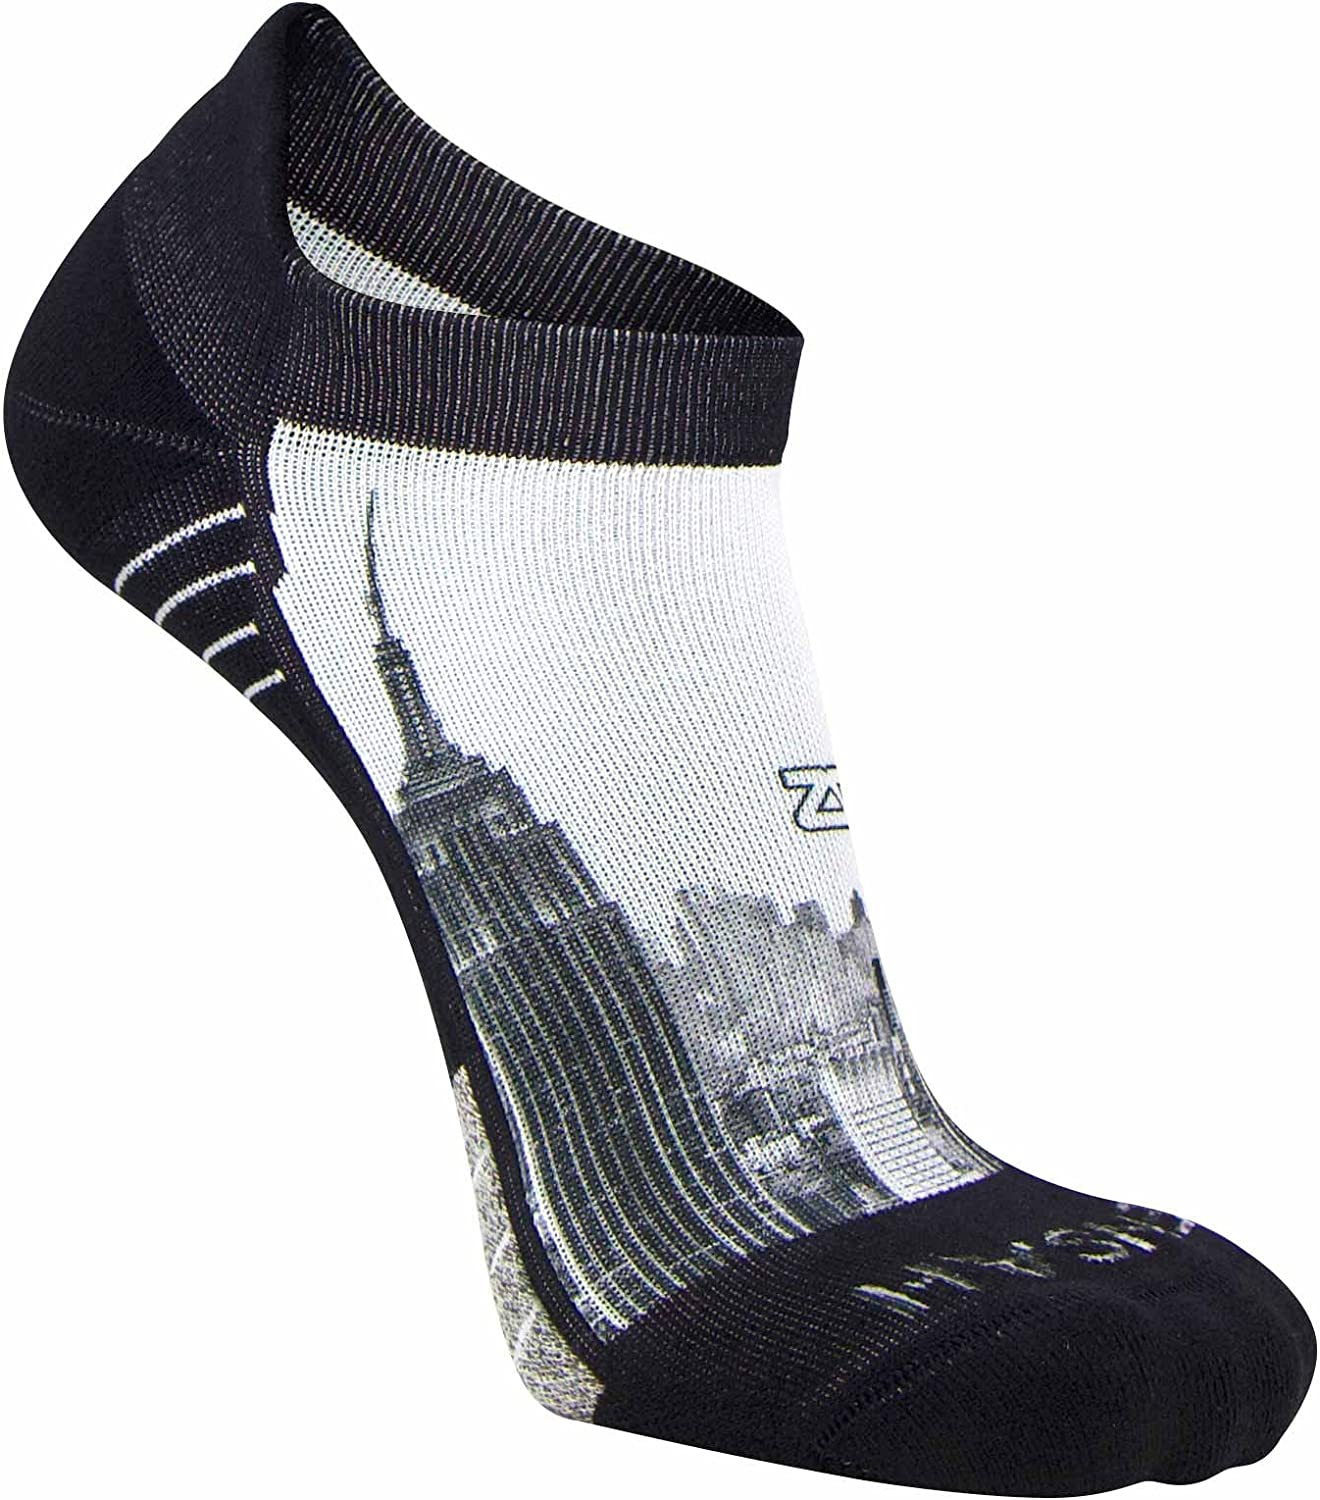 Zensah Limited Edition No-Show Running SocksAnti-Blister Comfortable Moisture Wicking Sport Socks for Men and Women (Large, NYC Empire State)